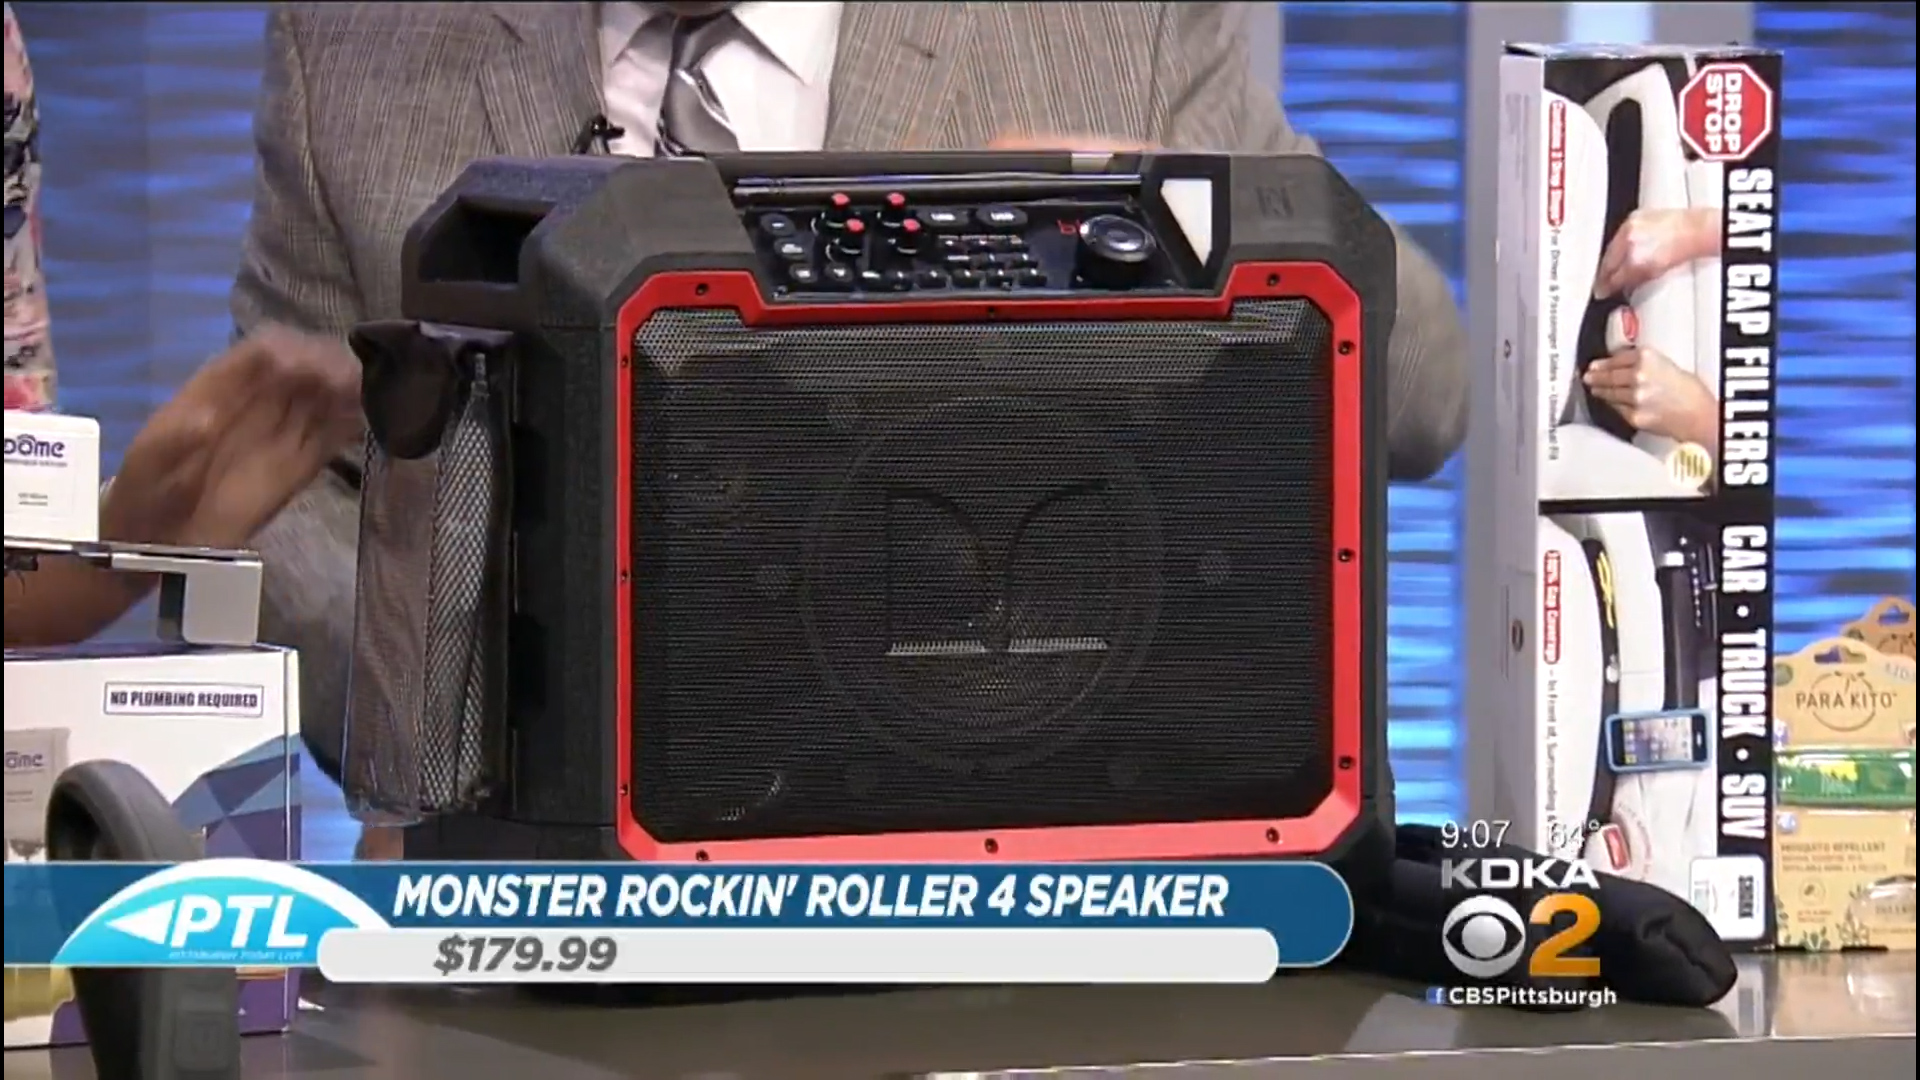 MONSTER ROCKIN' ROLLER 4 (RUGGED BLUETOOTH SPEAKER - $179.99Shop Now (via Sam's Club)